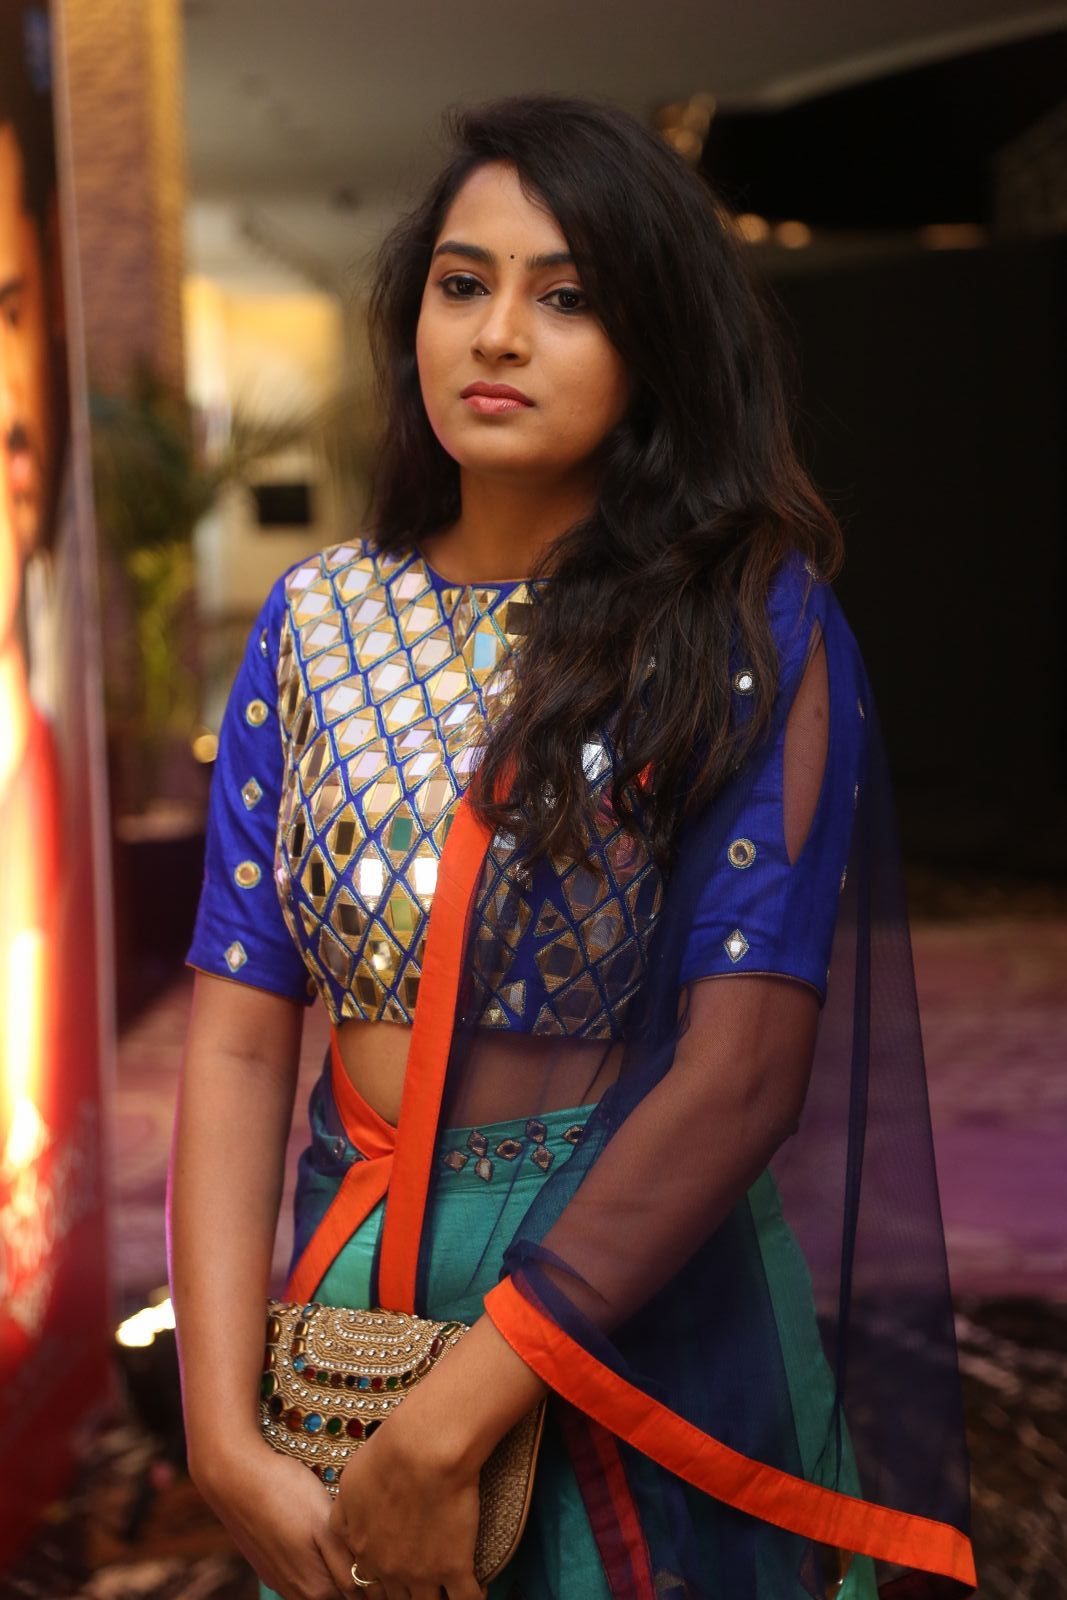 himaza Brand New Photo Stills of Tollywood Actress Himaza | South Actresses Himaza 58